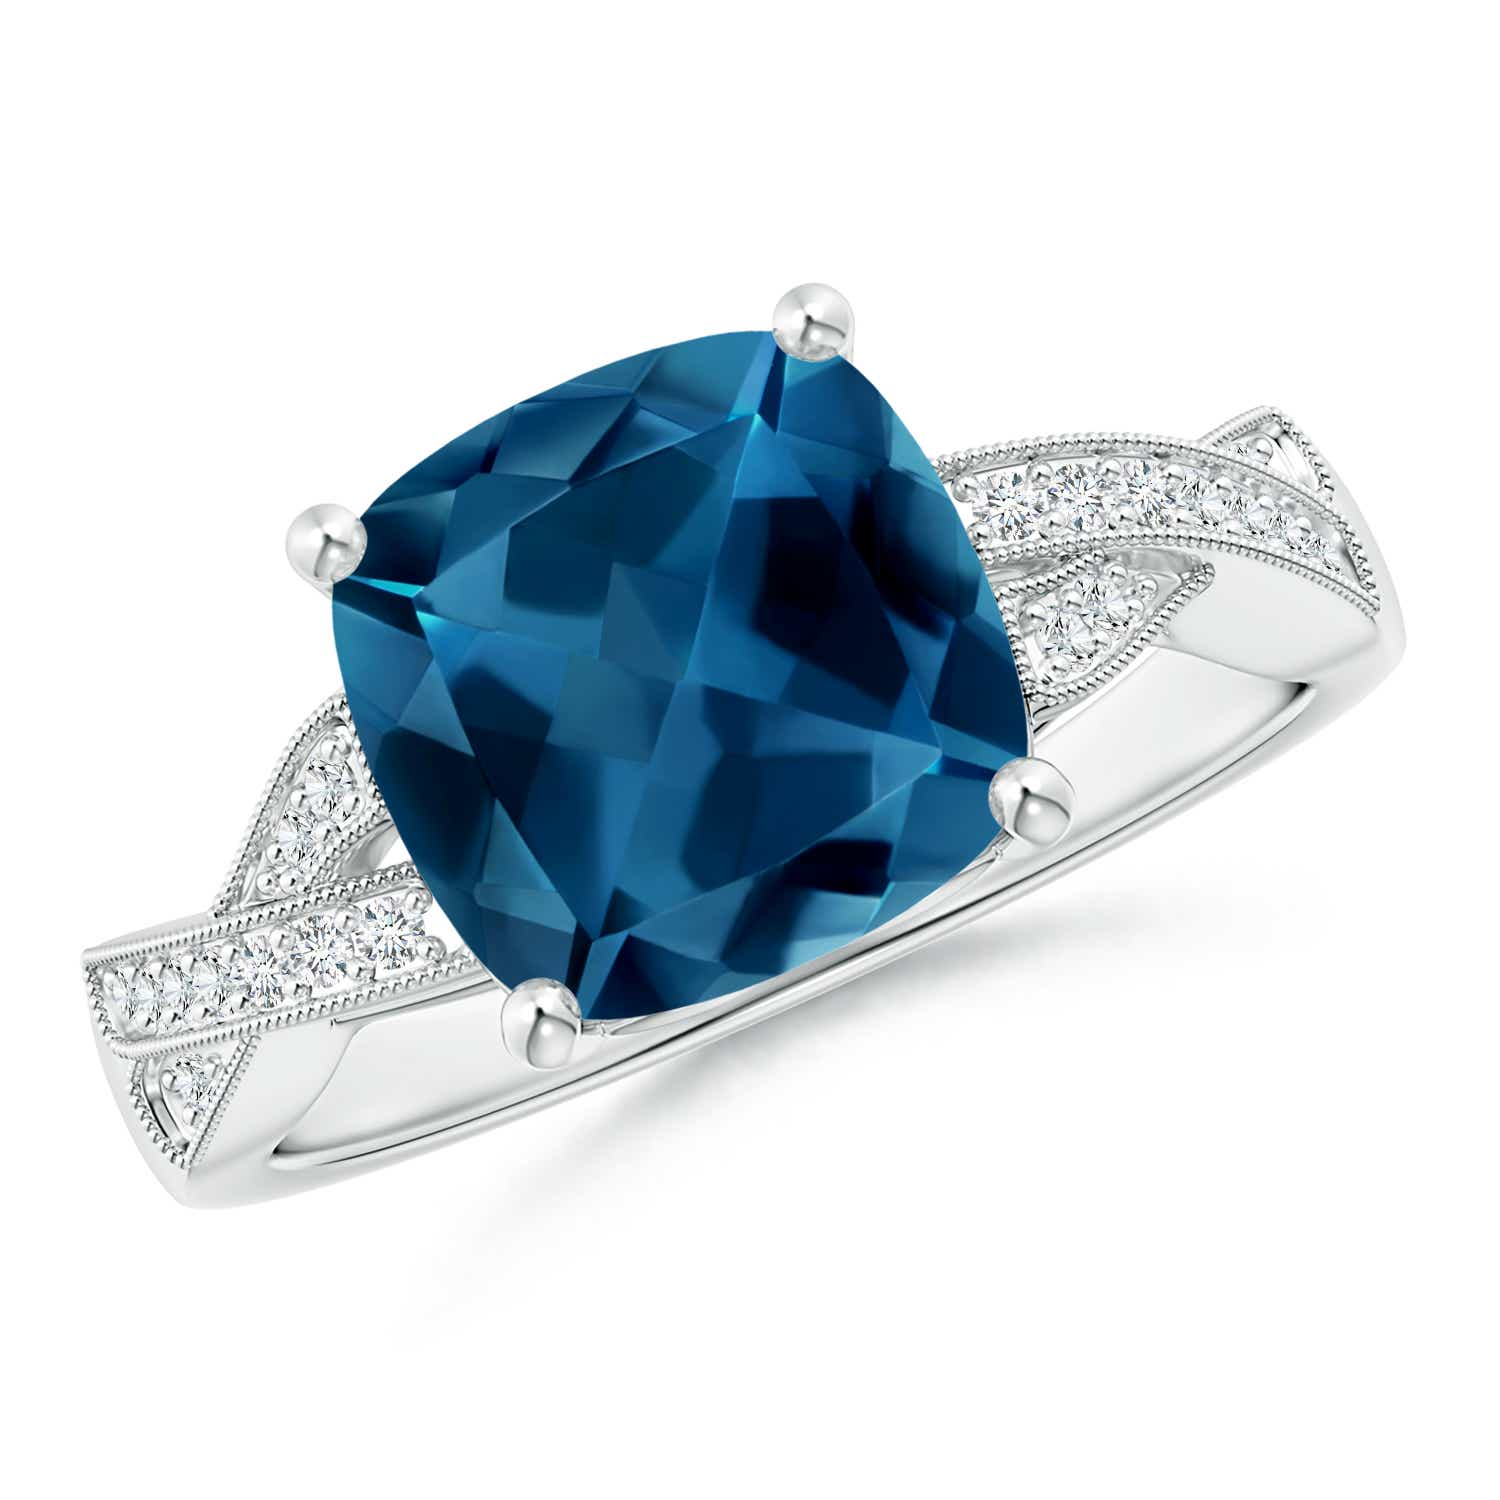 Cushion London Blue Topaz Criss Cross Ring with Diamonds